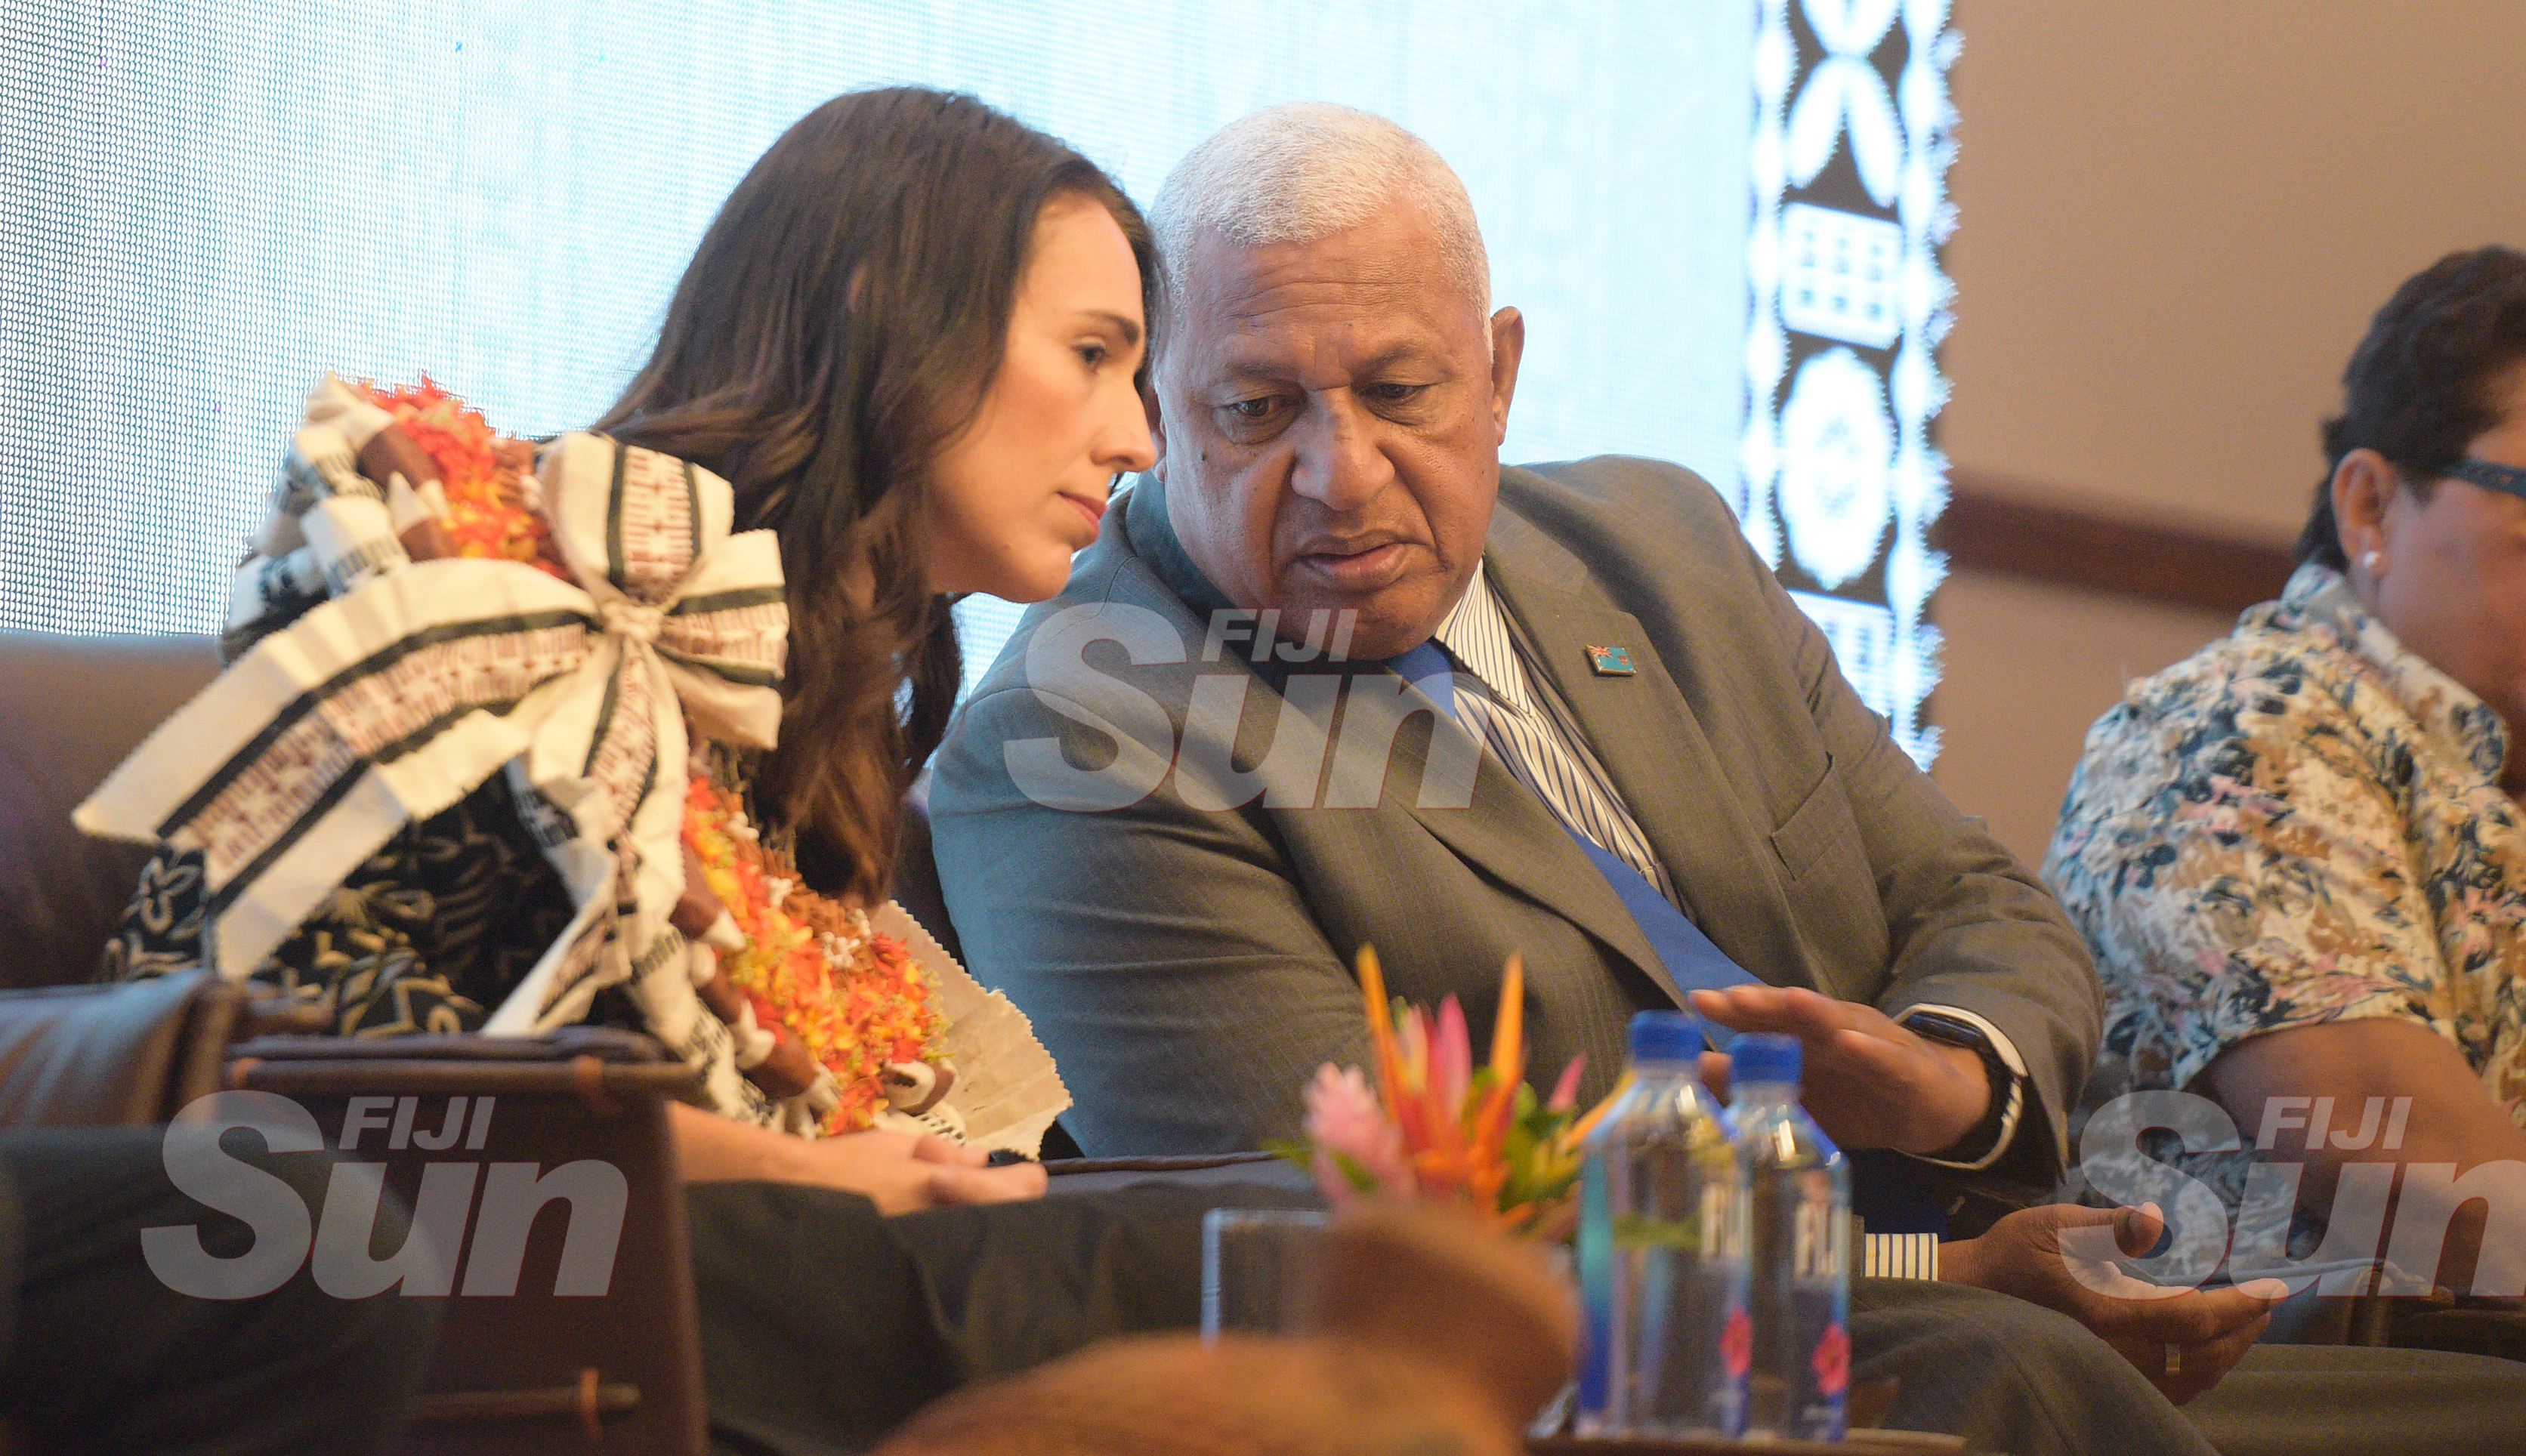 New Zealand Prime Minister Jacinda Ardern with Fijian Prime Minister Voreqe Bainimarama during her traditional welcome ceremony at Grand Pacific Hotel on February 25, 2020. Photo: Ronald Kumar.